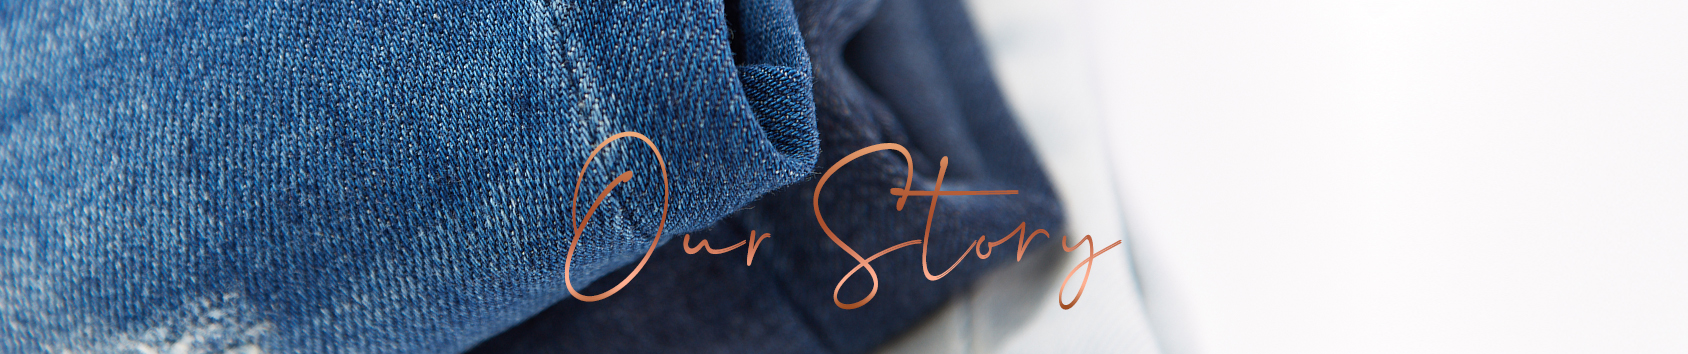 Our Story Premium Sustainable Denim   London Jeans